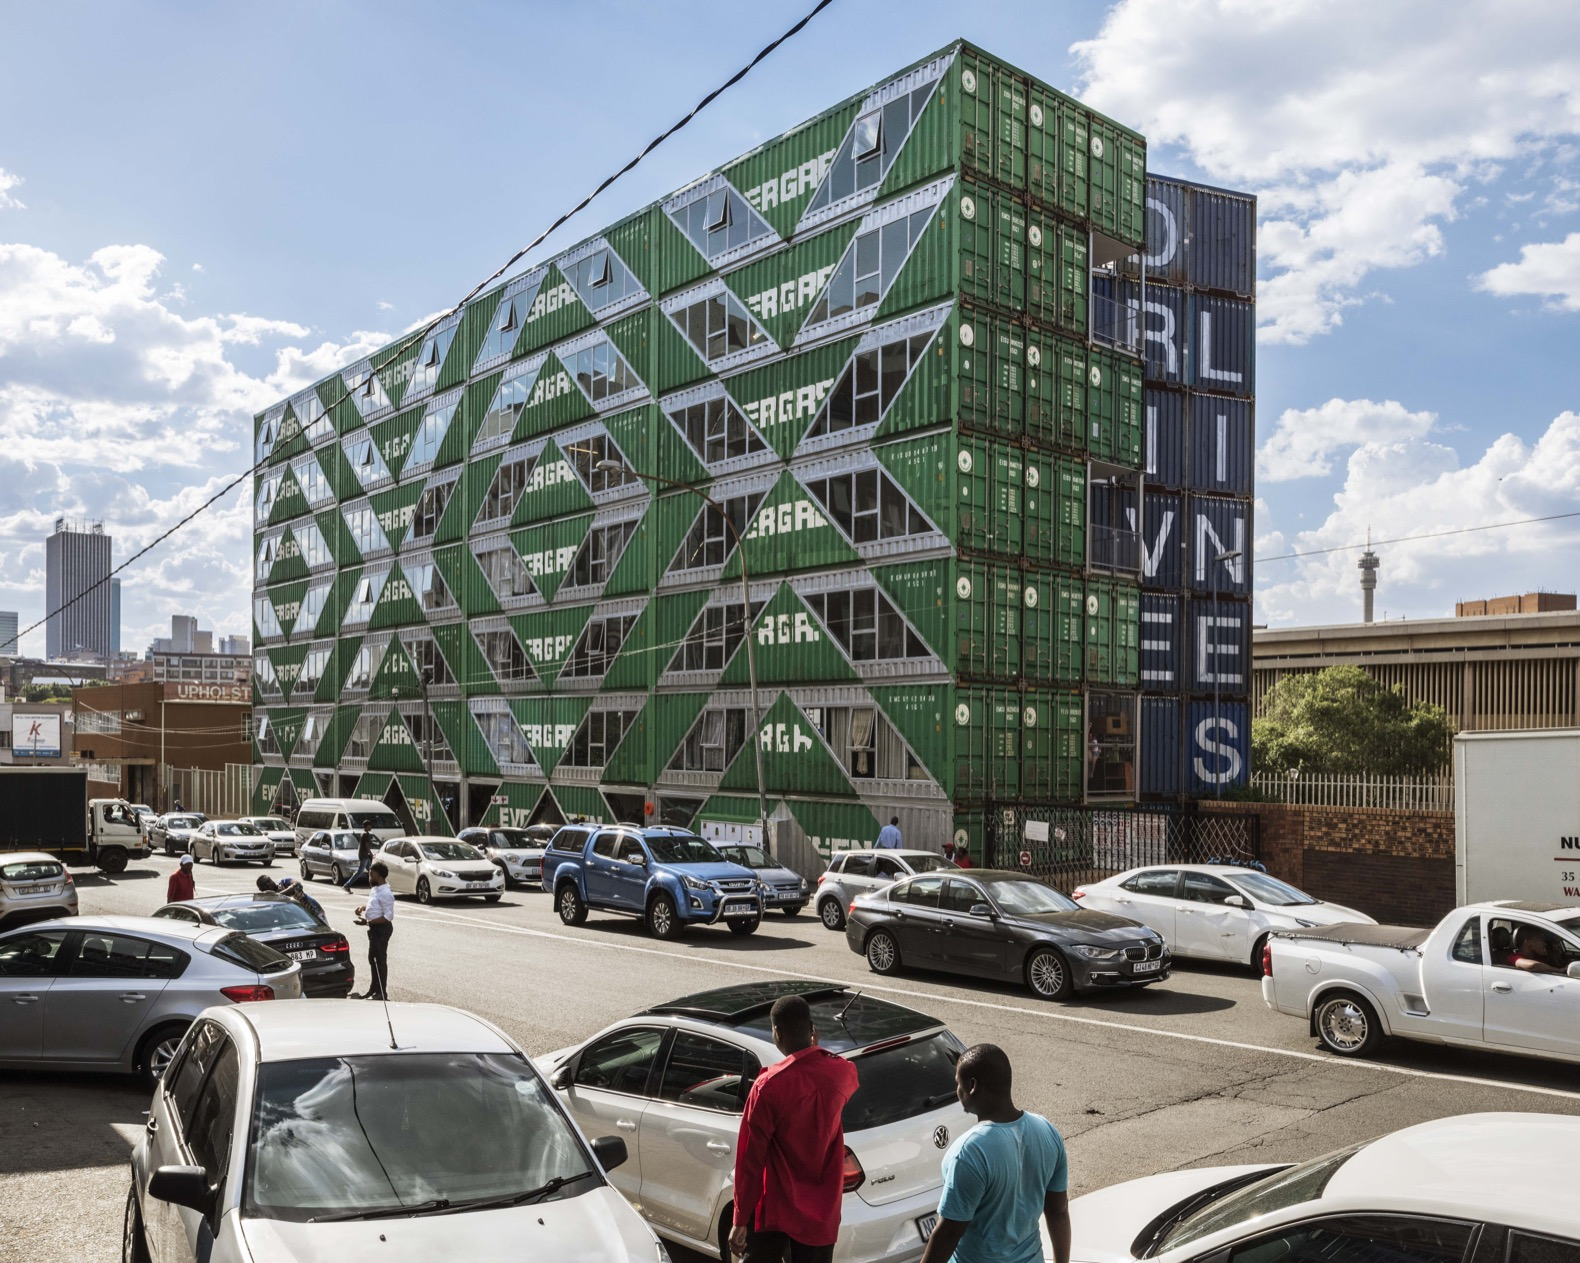 LOT-EK upcycles 140 shipping containers into an apartment complex in South Africa